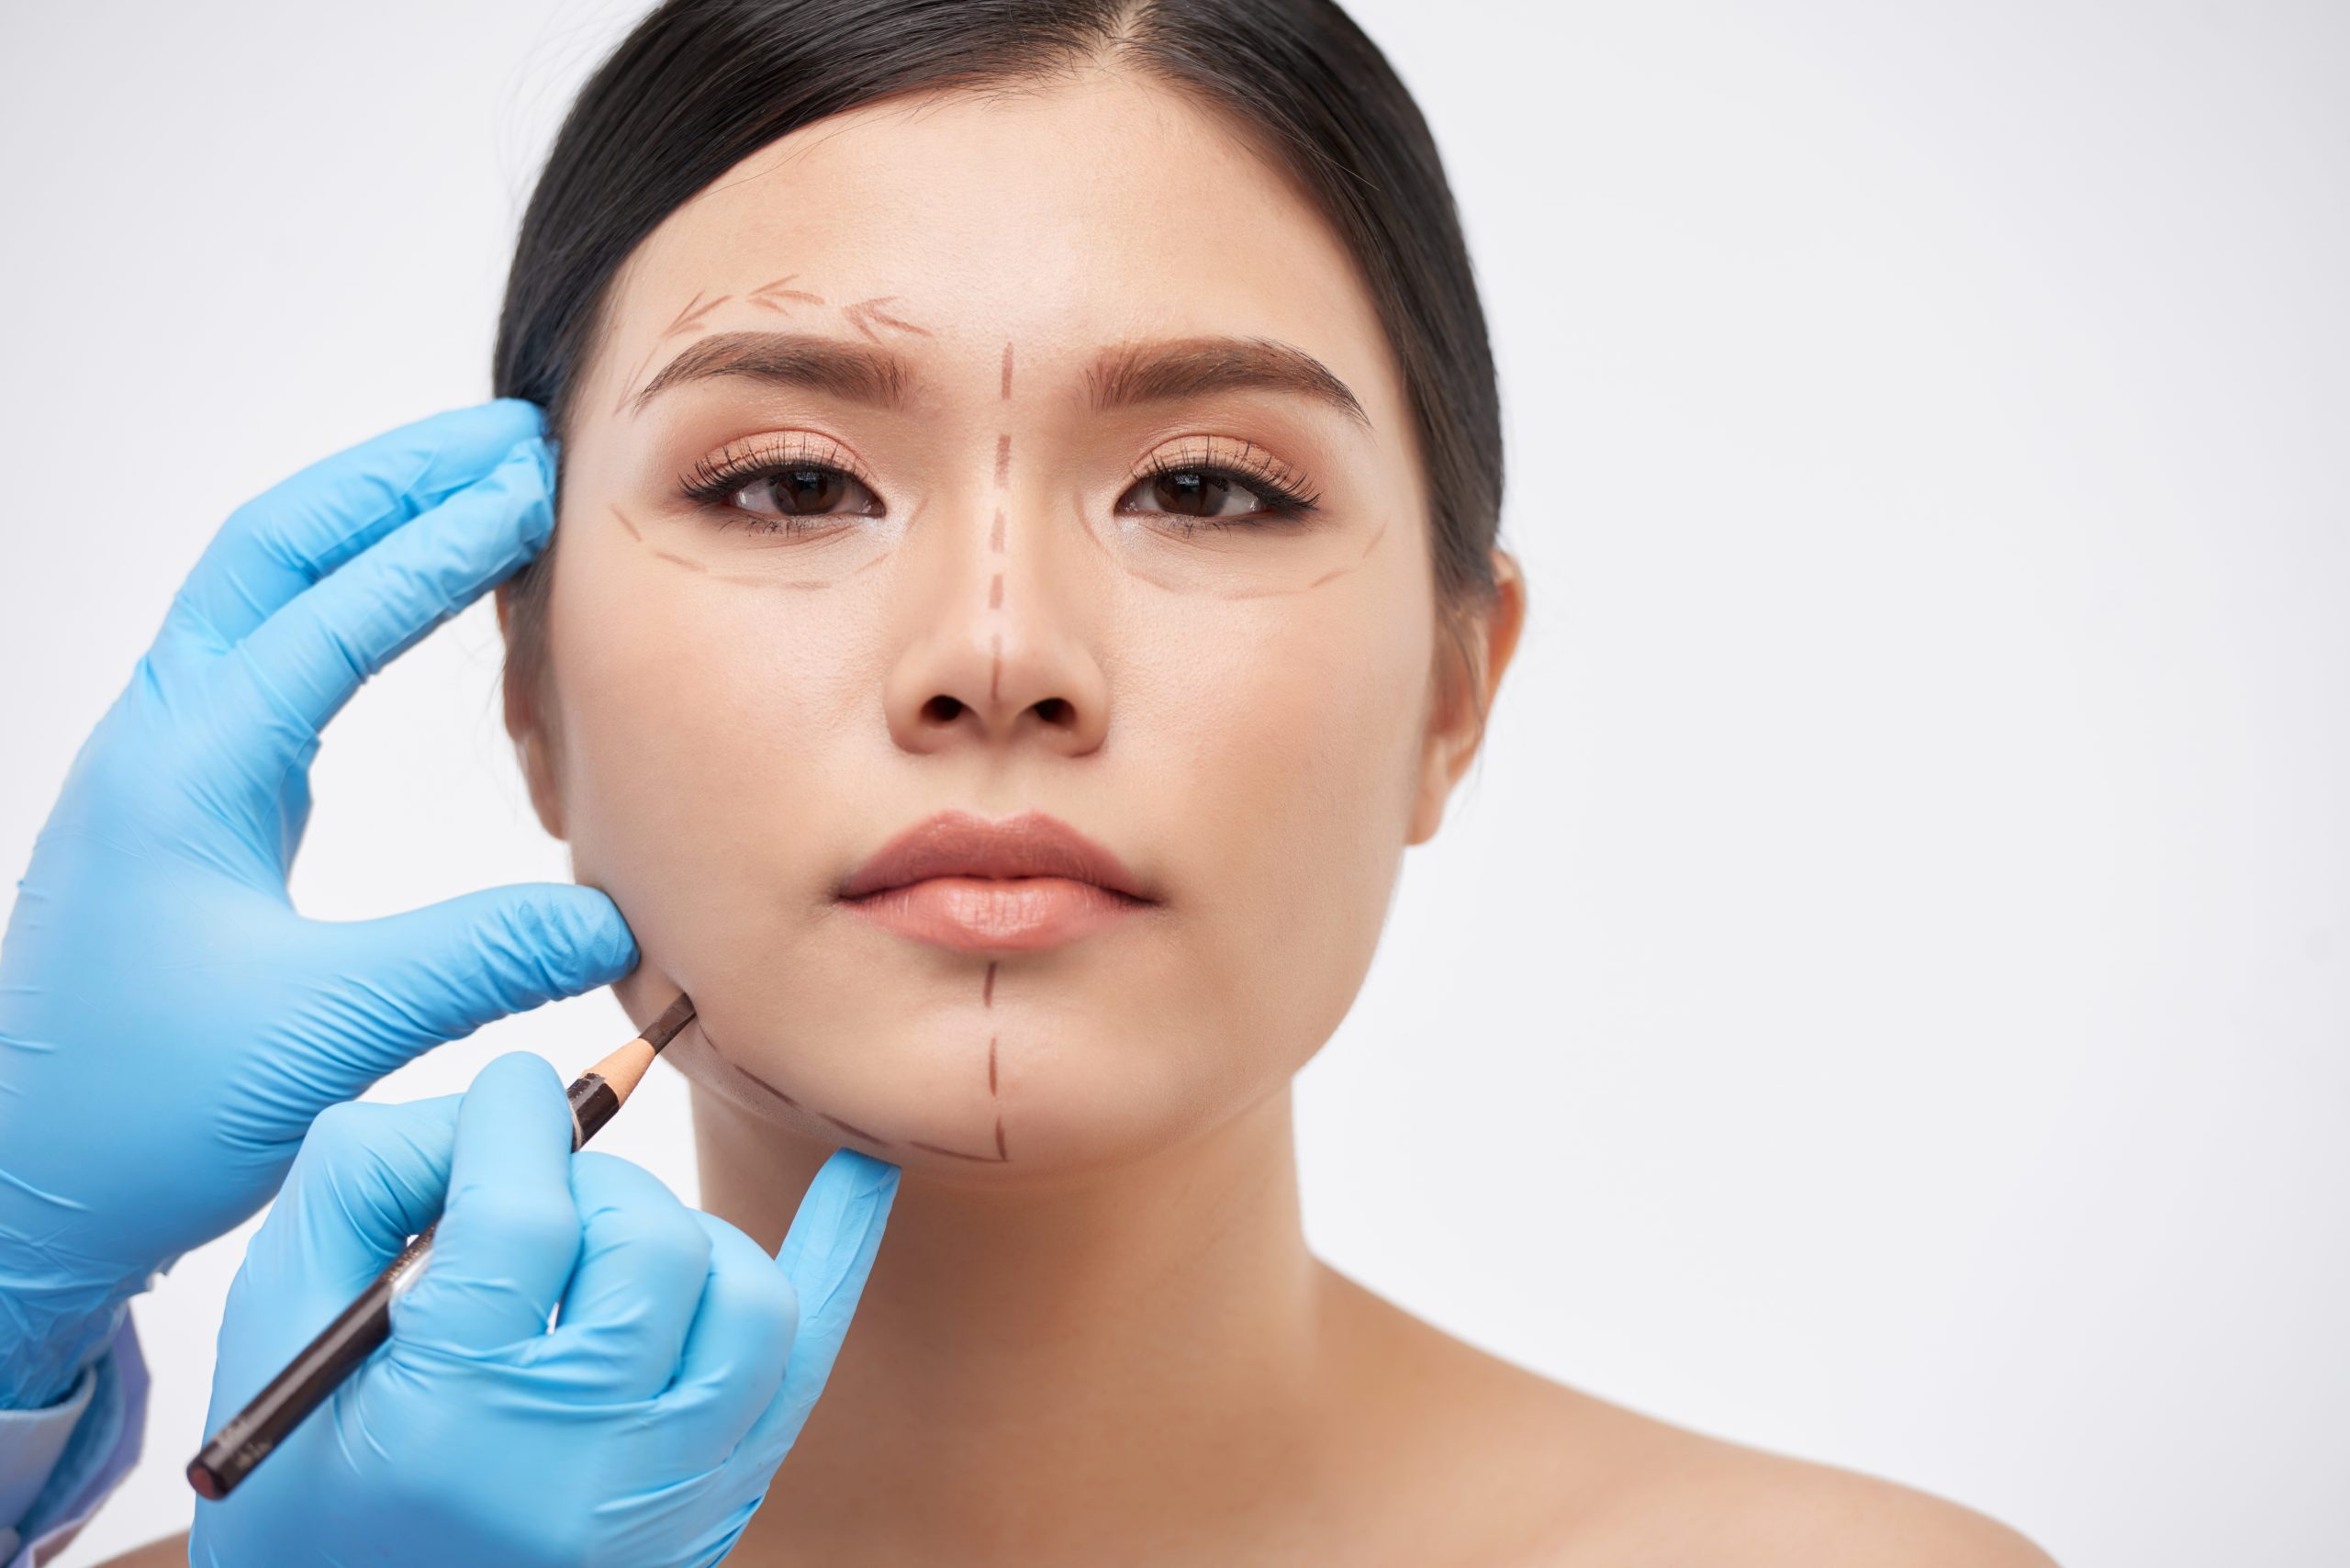 Drawing marks for Botox treatment